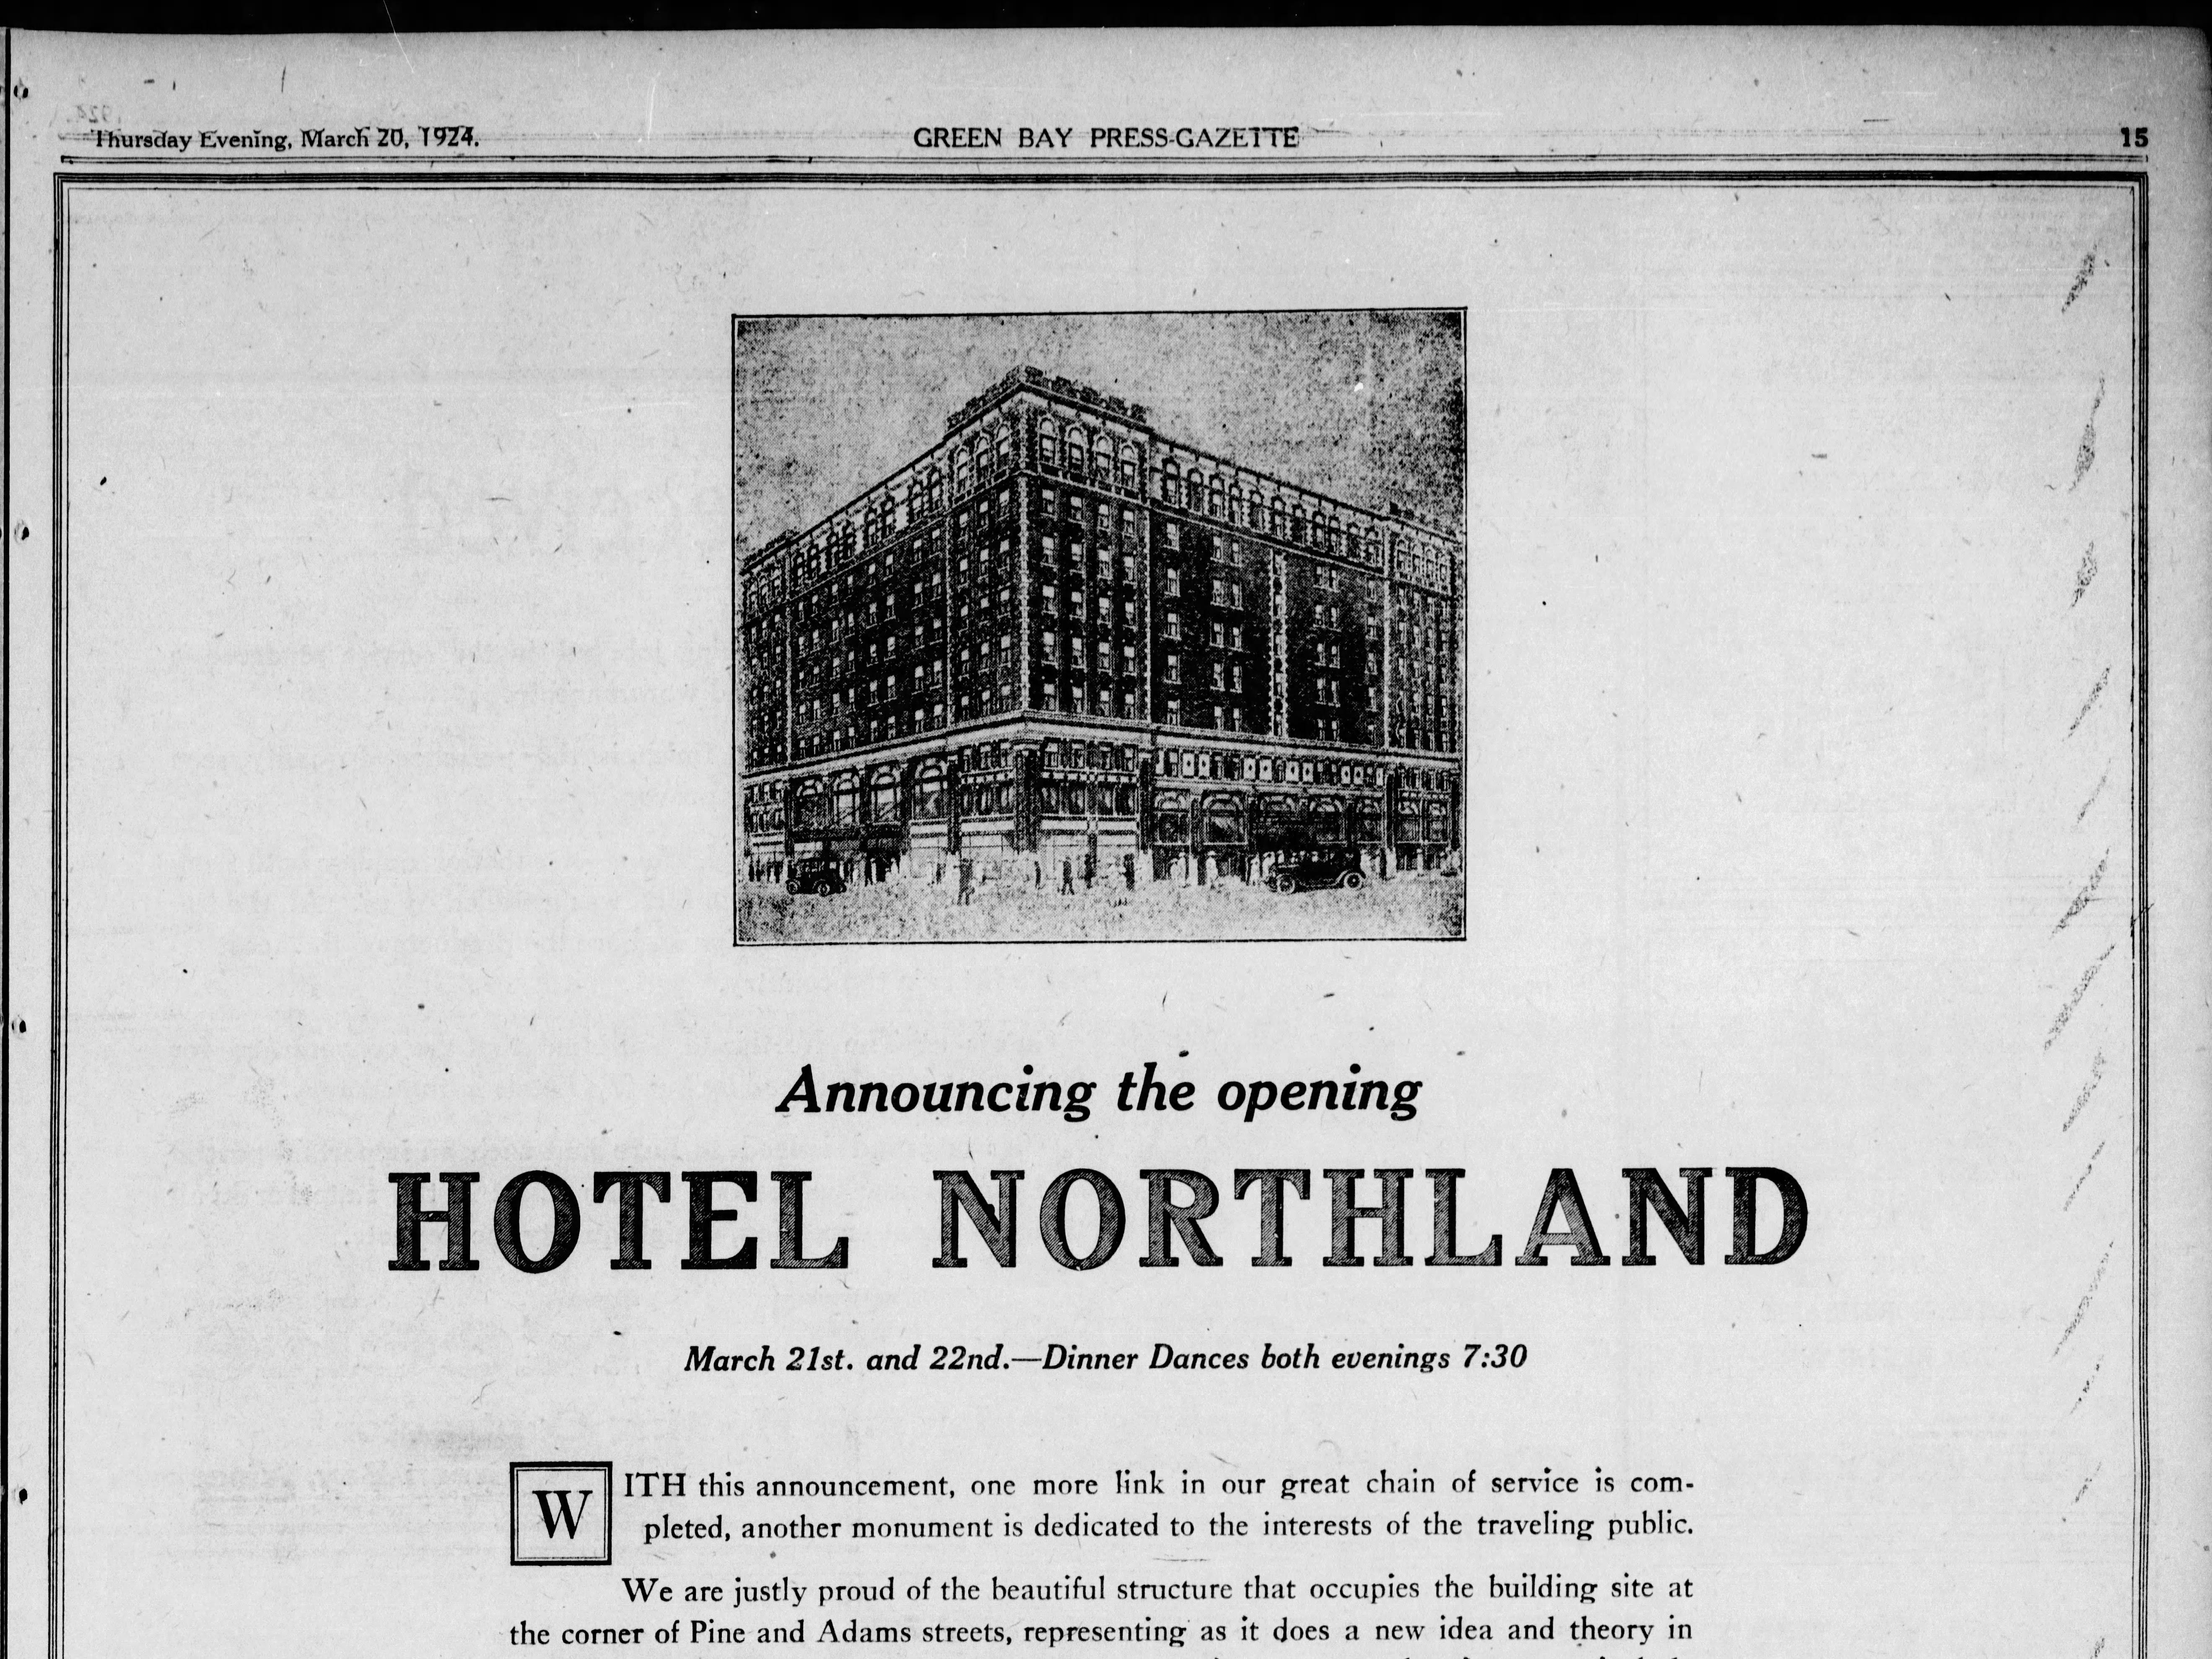 An advertisement in a March 20, 1924 special section in the Green Bay Press Gazette announcing the opening of the Hotel Northland.